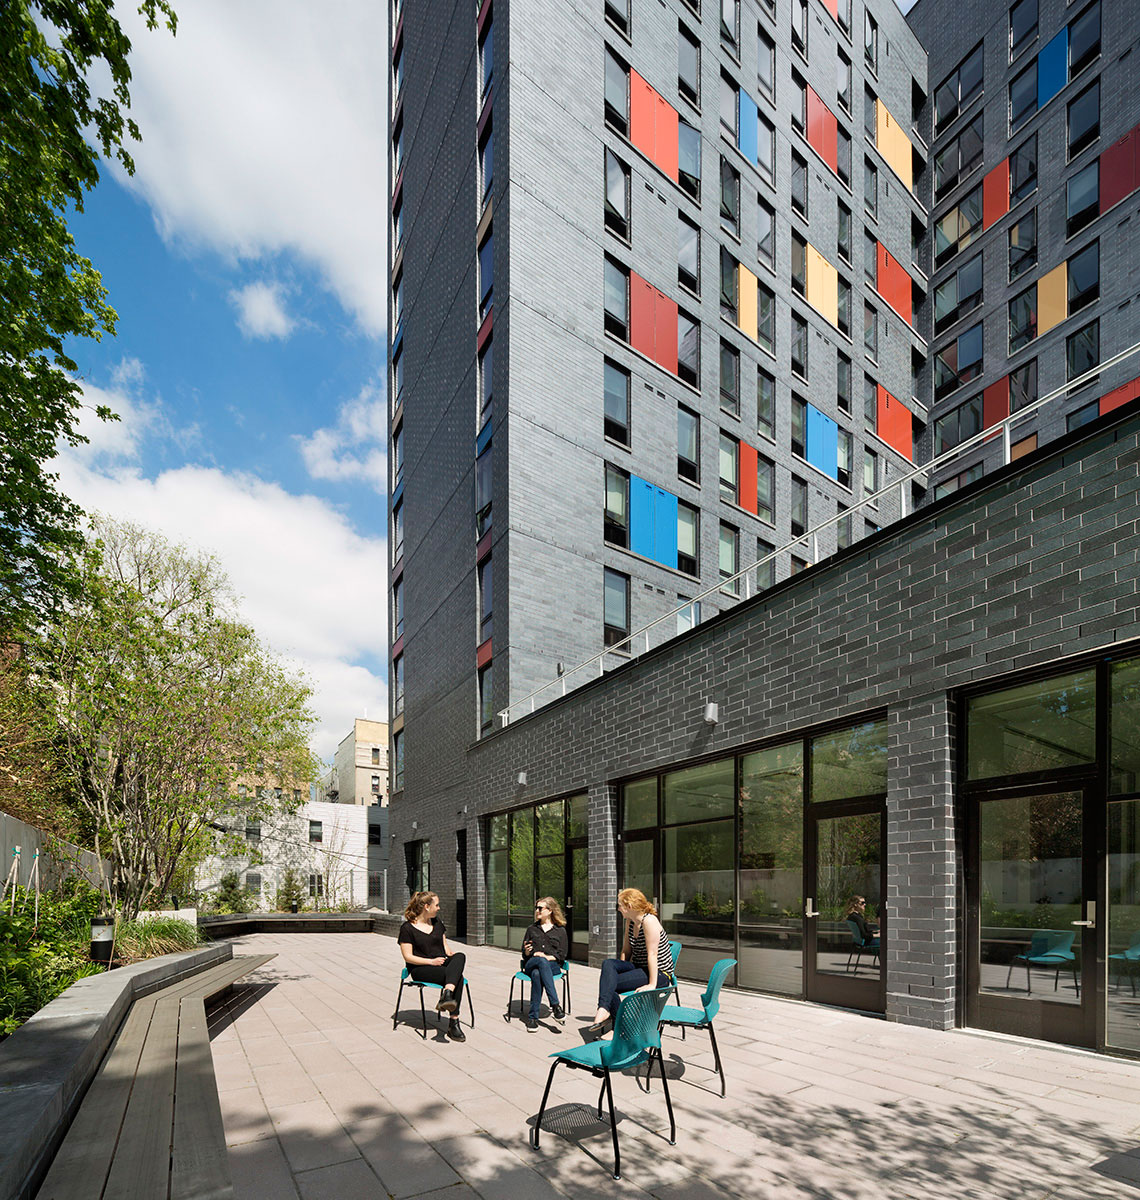 A Higher Form of High-Rise | by Martin Filler | NYR Daily ...